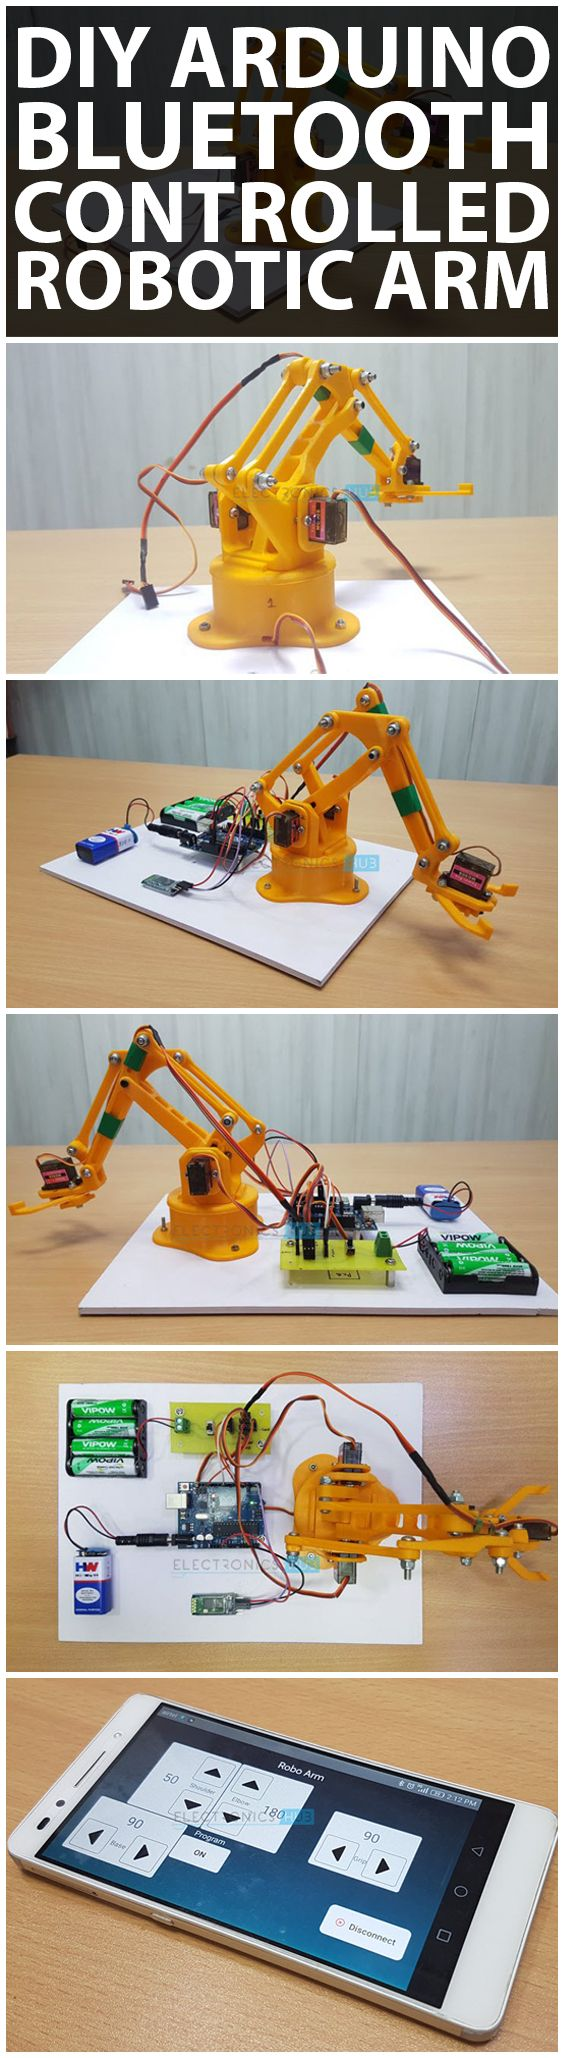 DIY Arduino & Bluetooth Controlled Robotic Arm Project with Circuit Diagram & Output